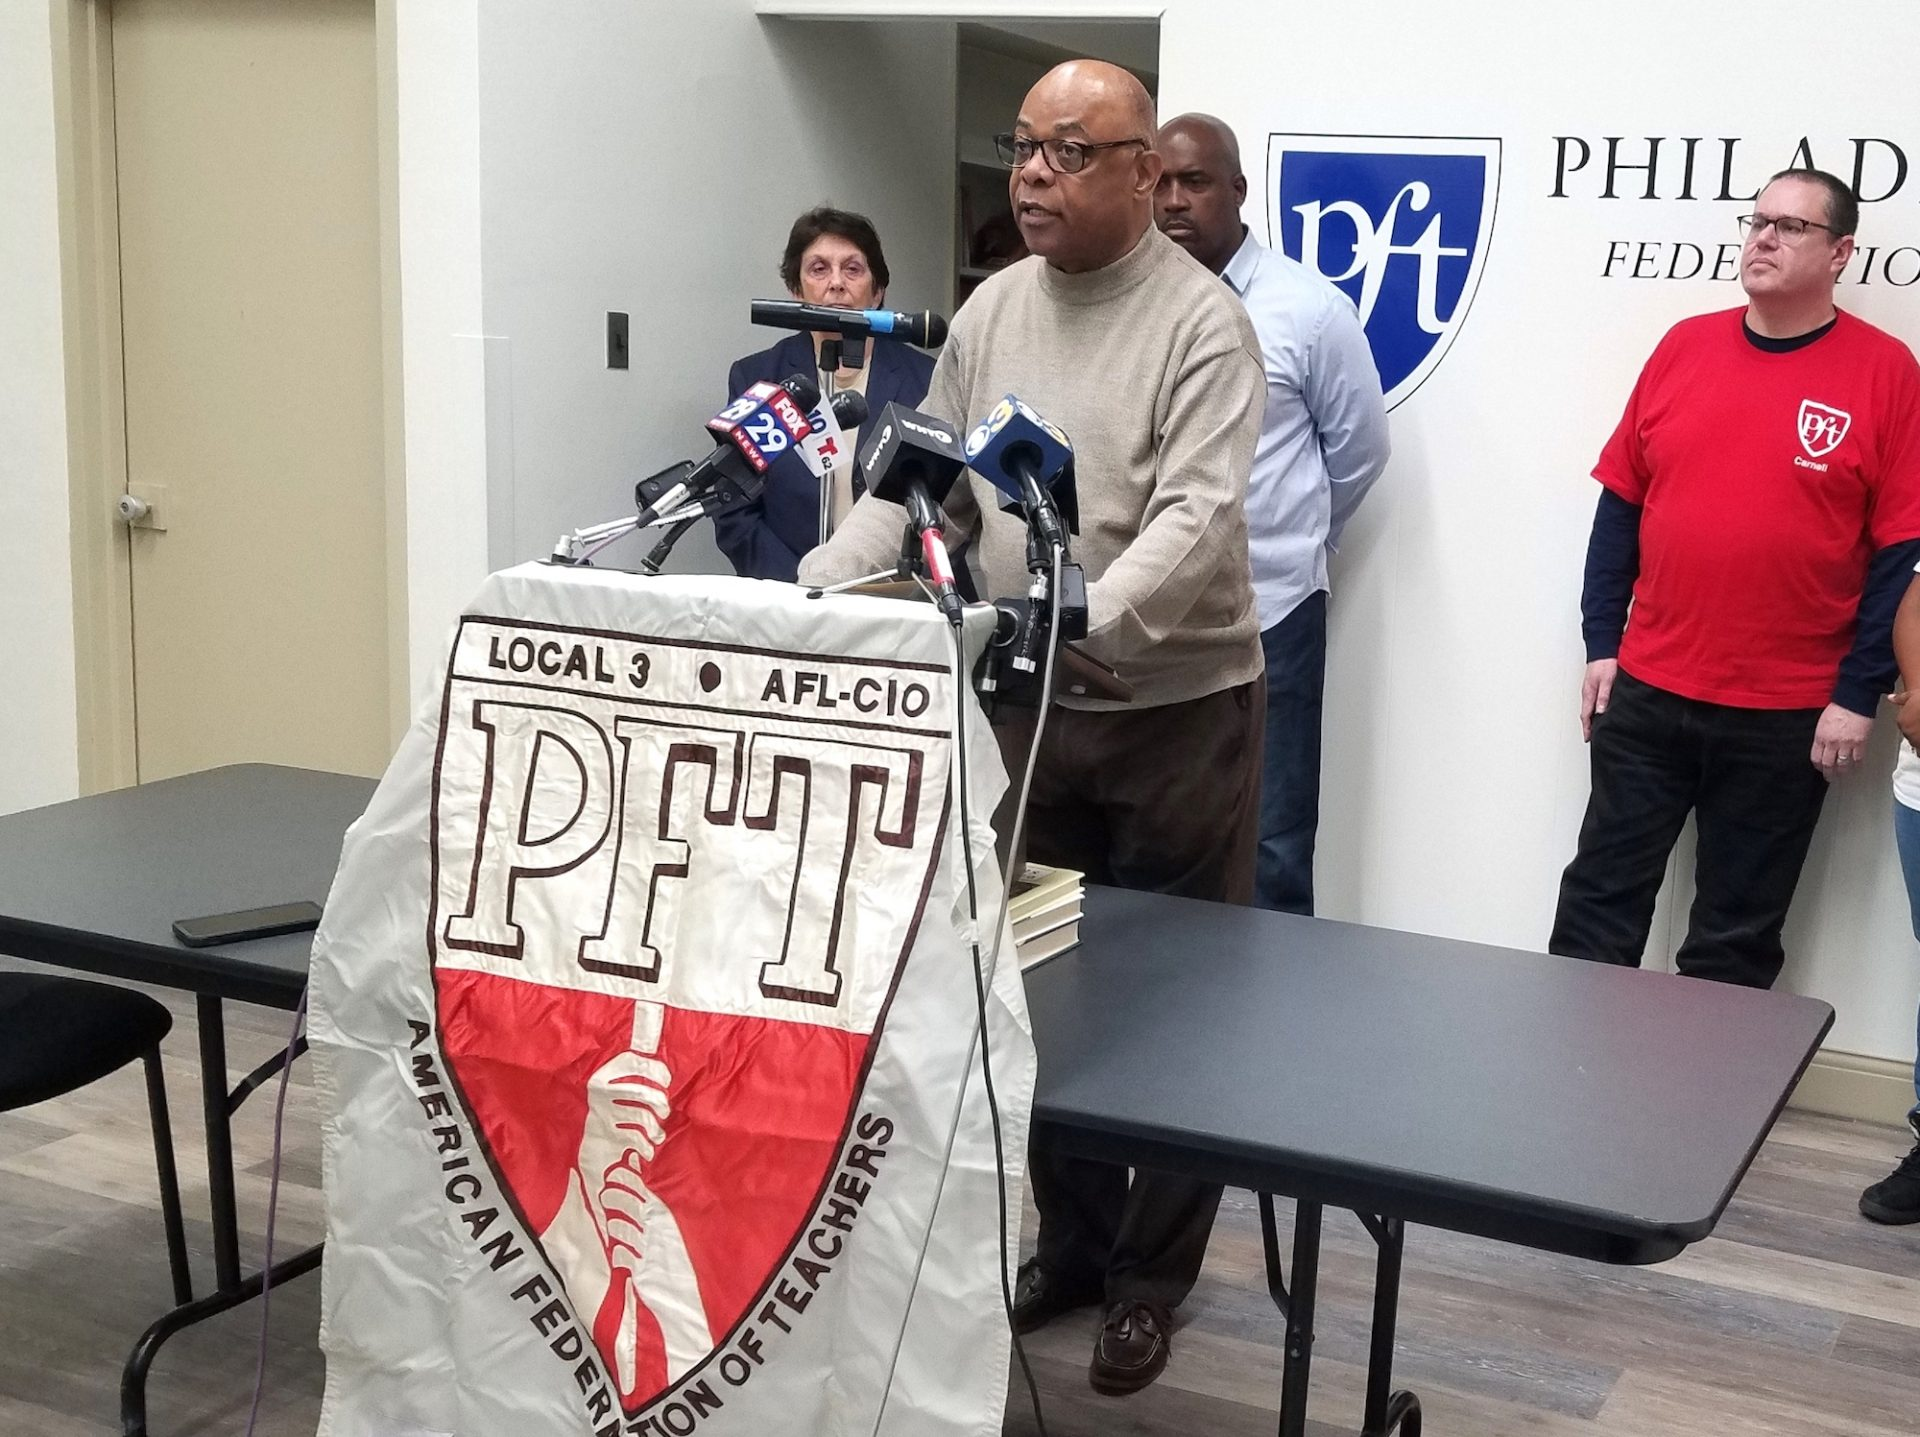 Jerry Jordan, president of the Philadelphia Federation of Teachers, announces the union is taking legal action over hazardous conditions in the city's schools on Jan. 20, 2019.